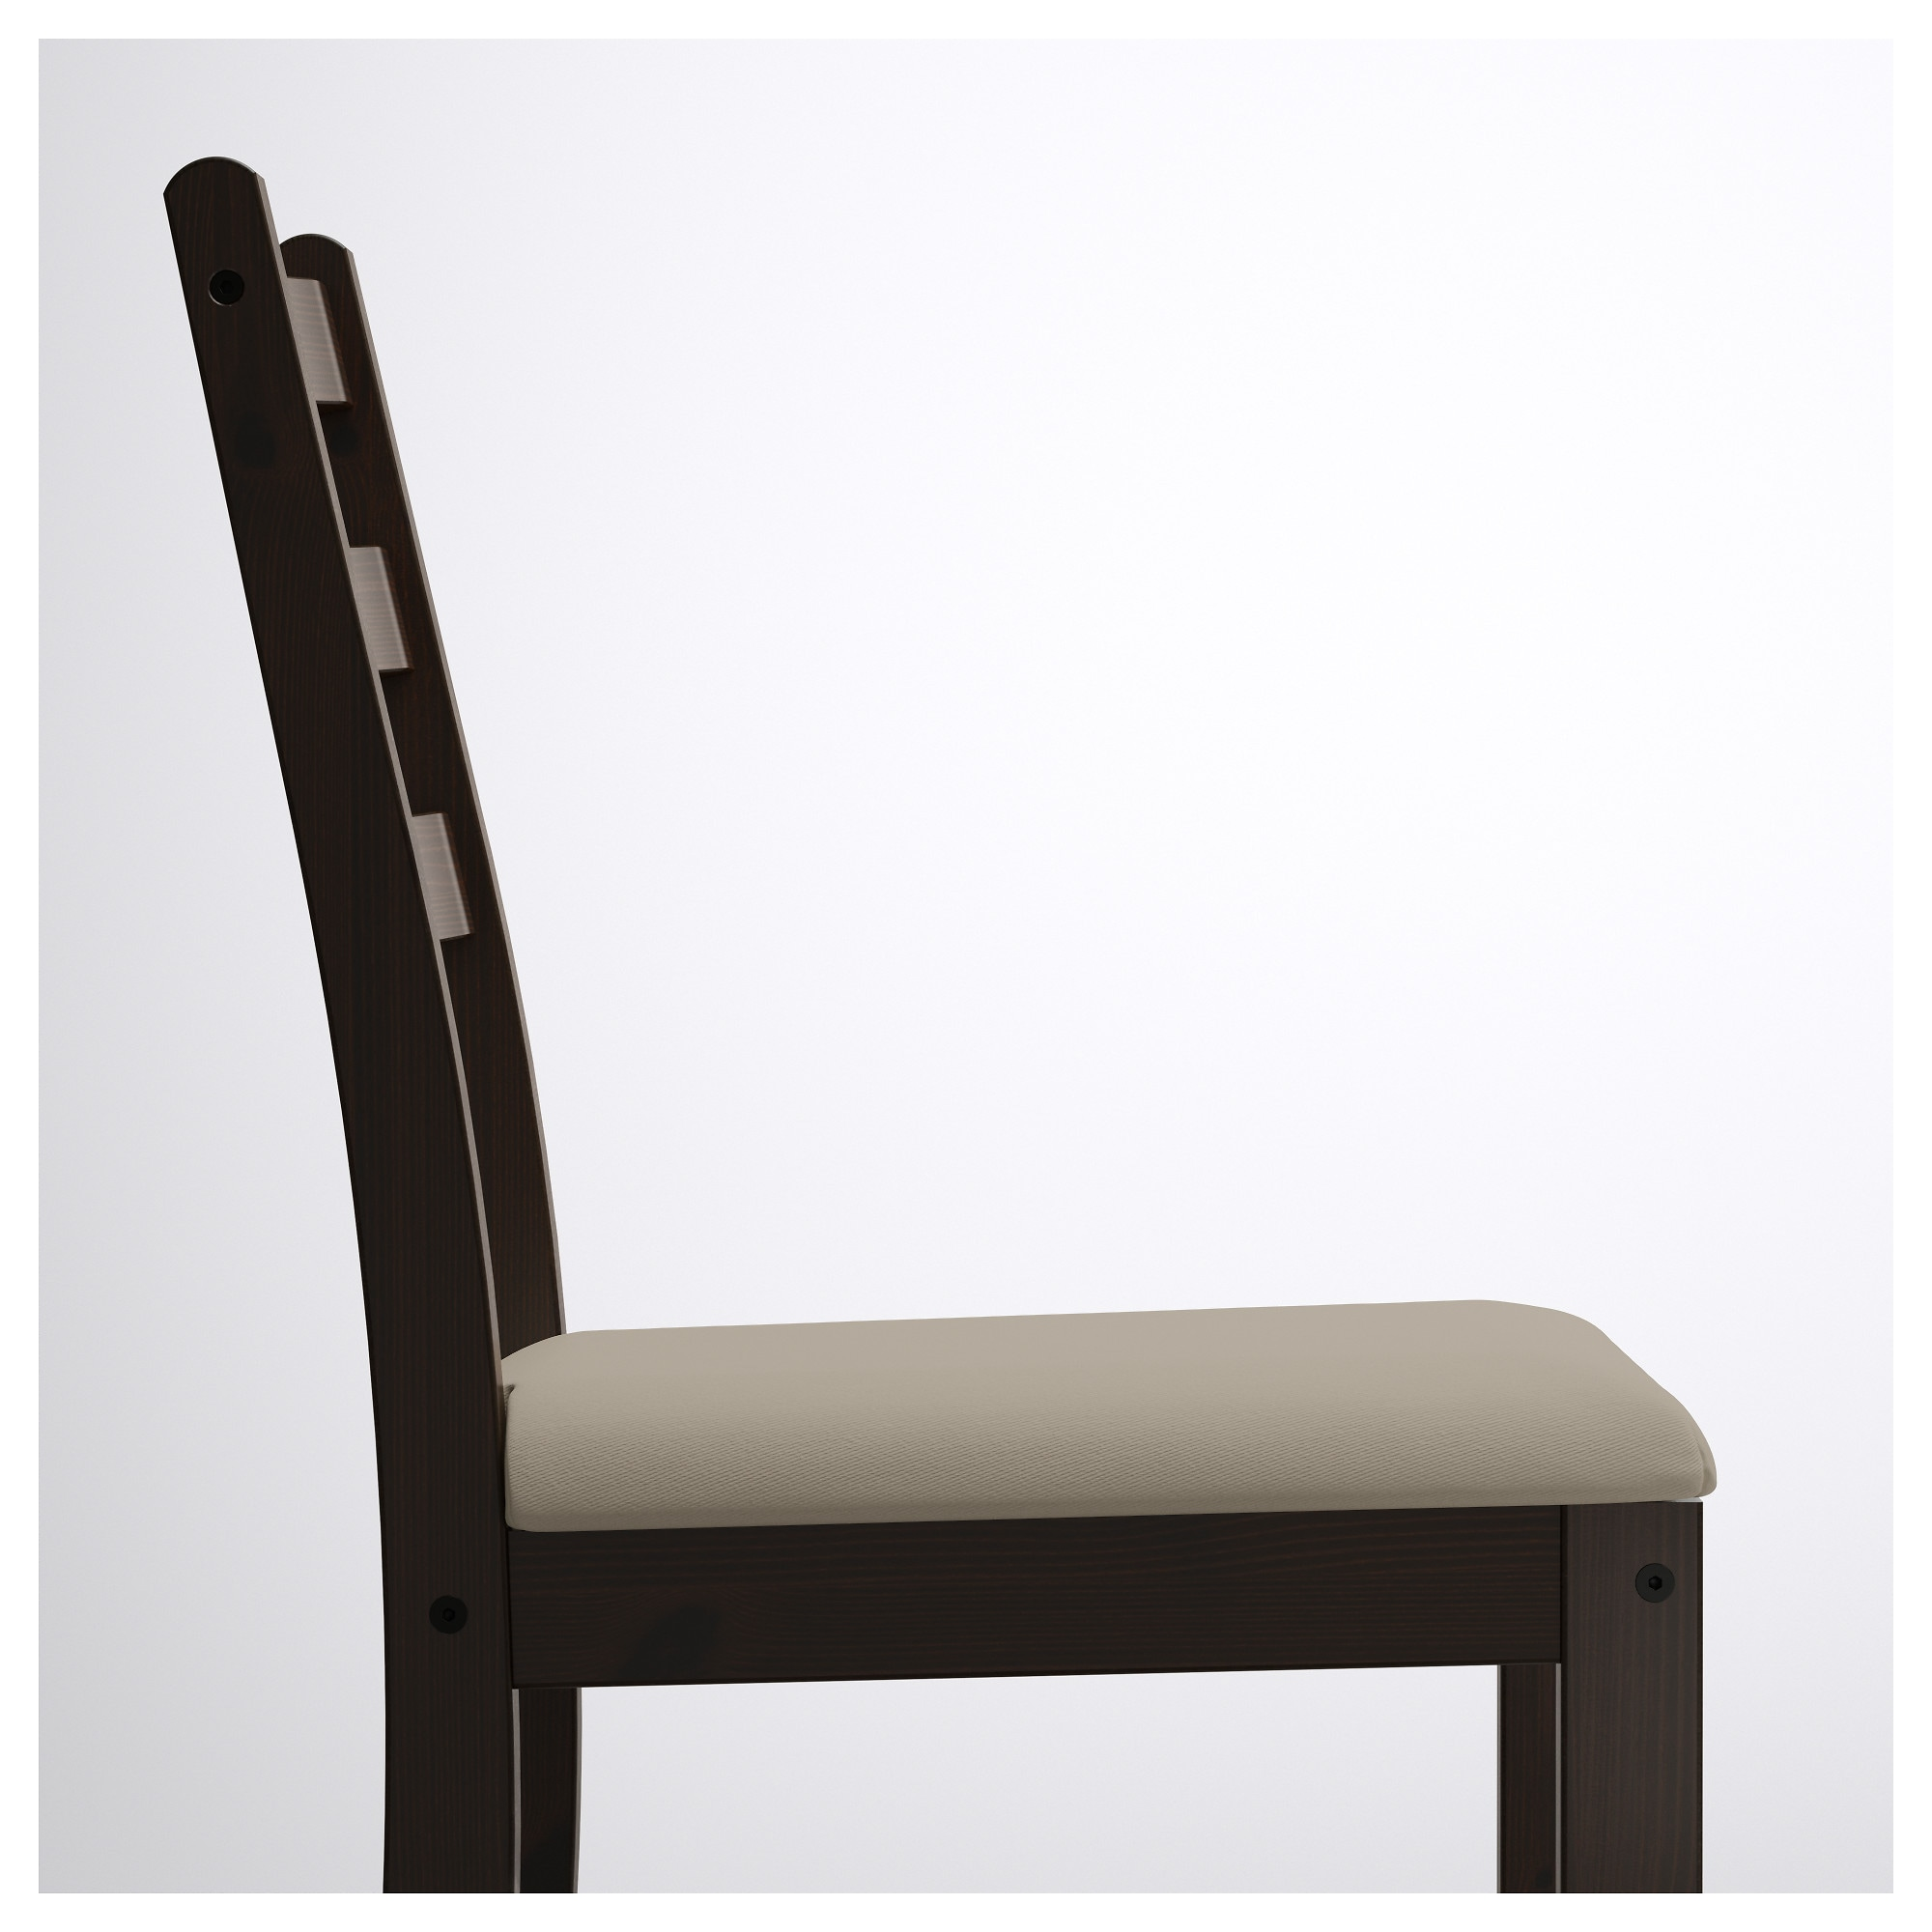 chaise ikea ingolf with chaise ikea ingolf. Black Bedroom Furniture Sets. Home Design Ideas